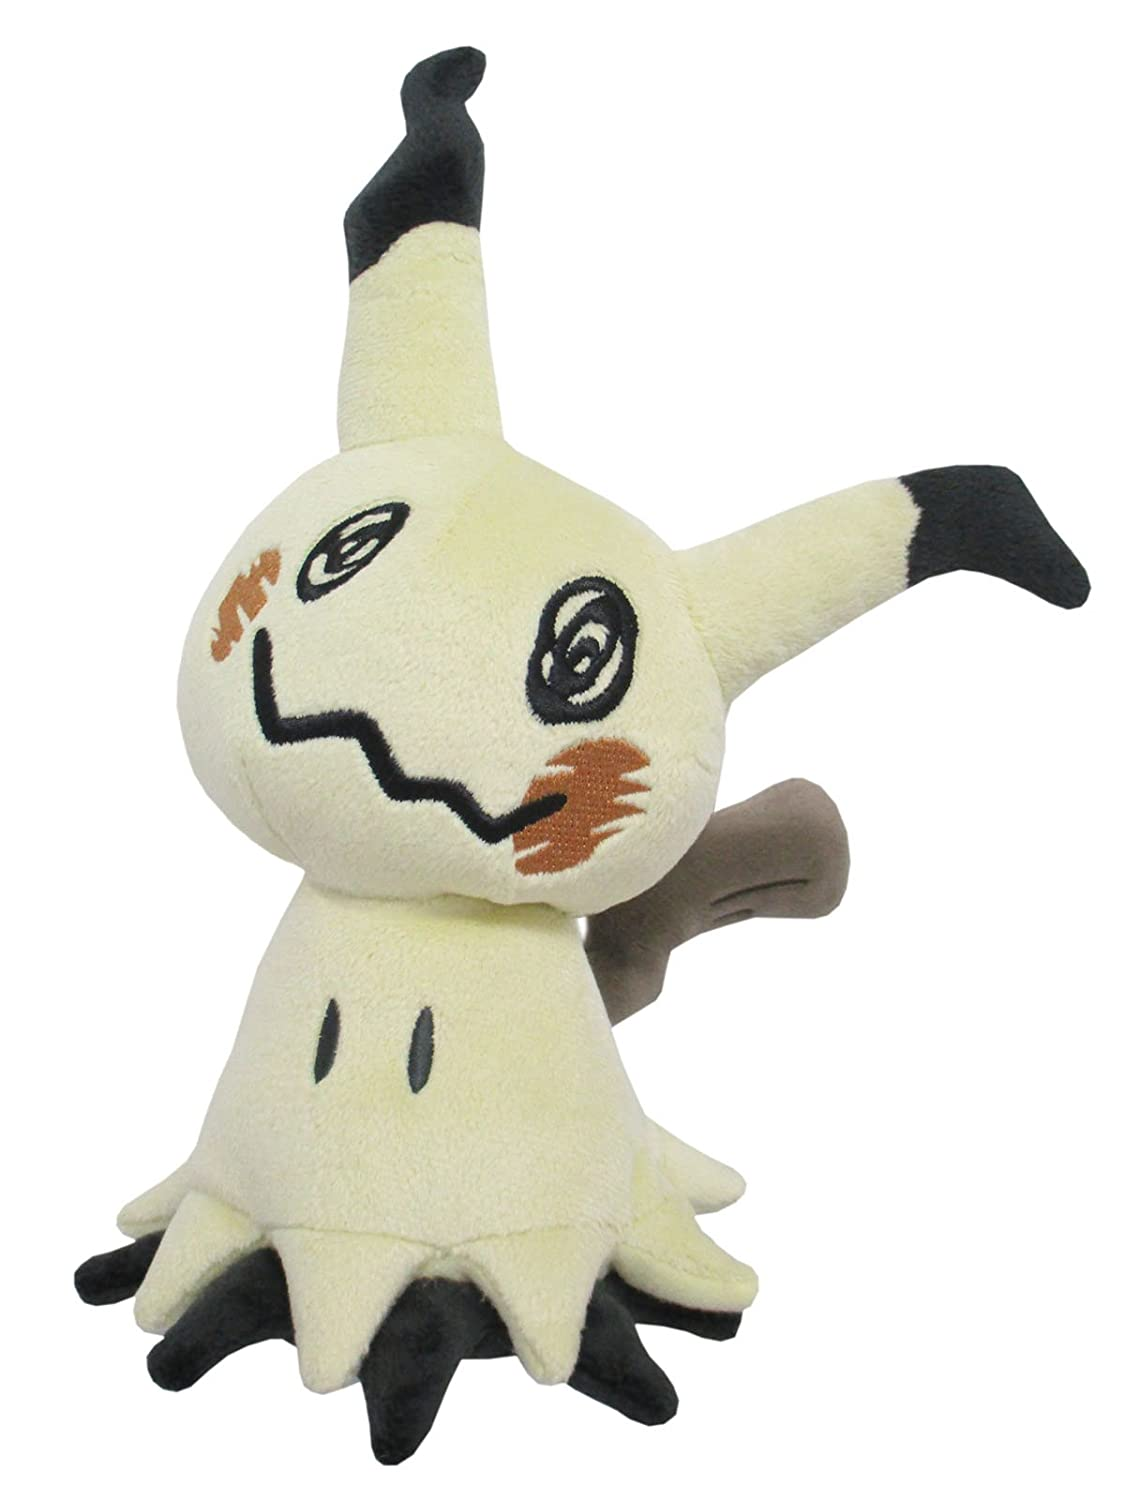 Sanei PP59 Mimikyu Pokemon All Star Collection Stuffed Plush, 7 7 JBK International